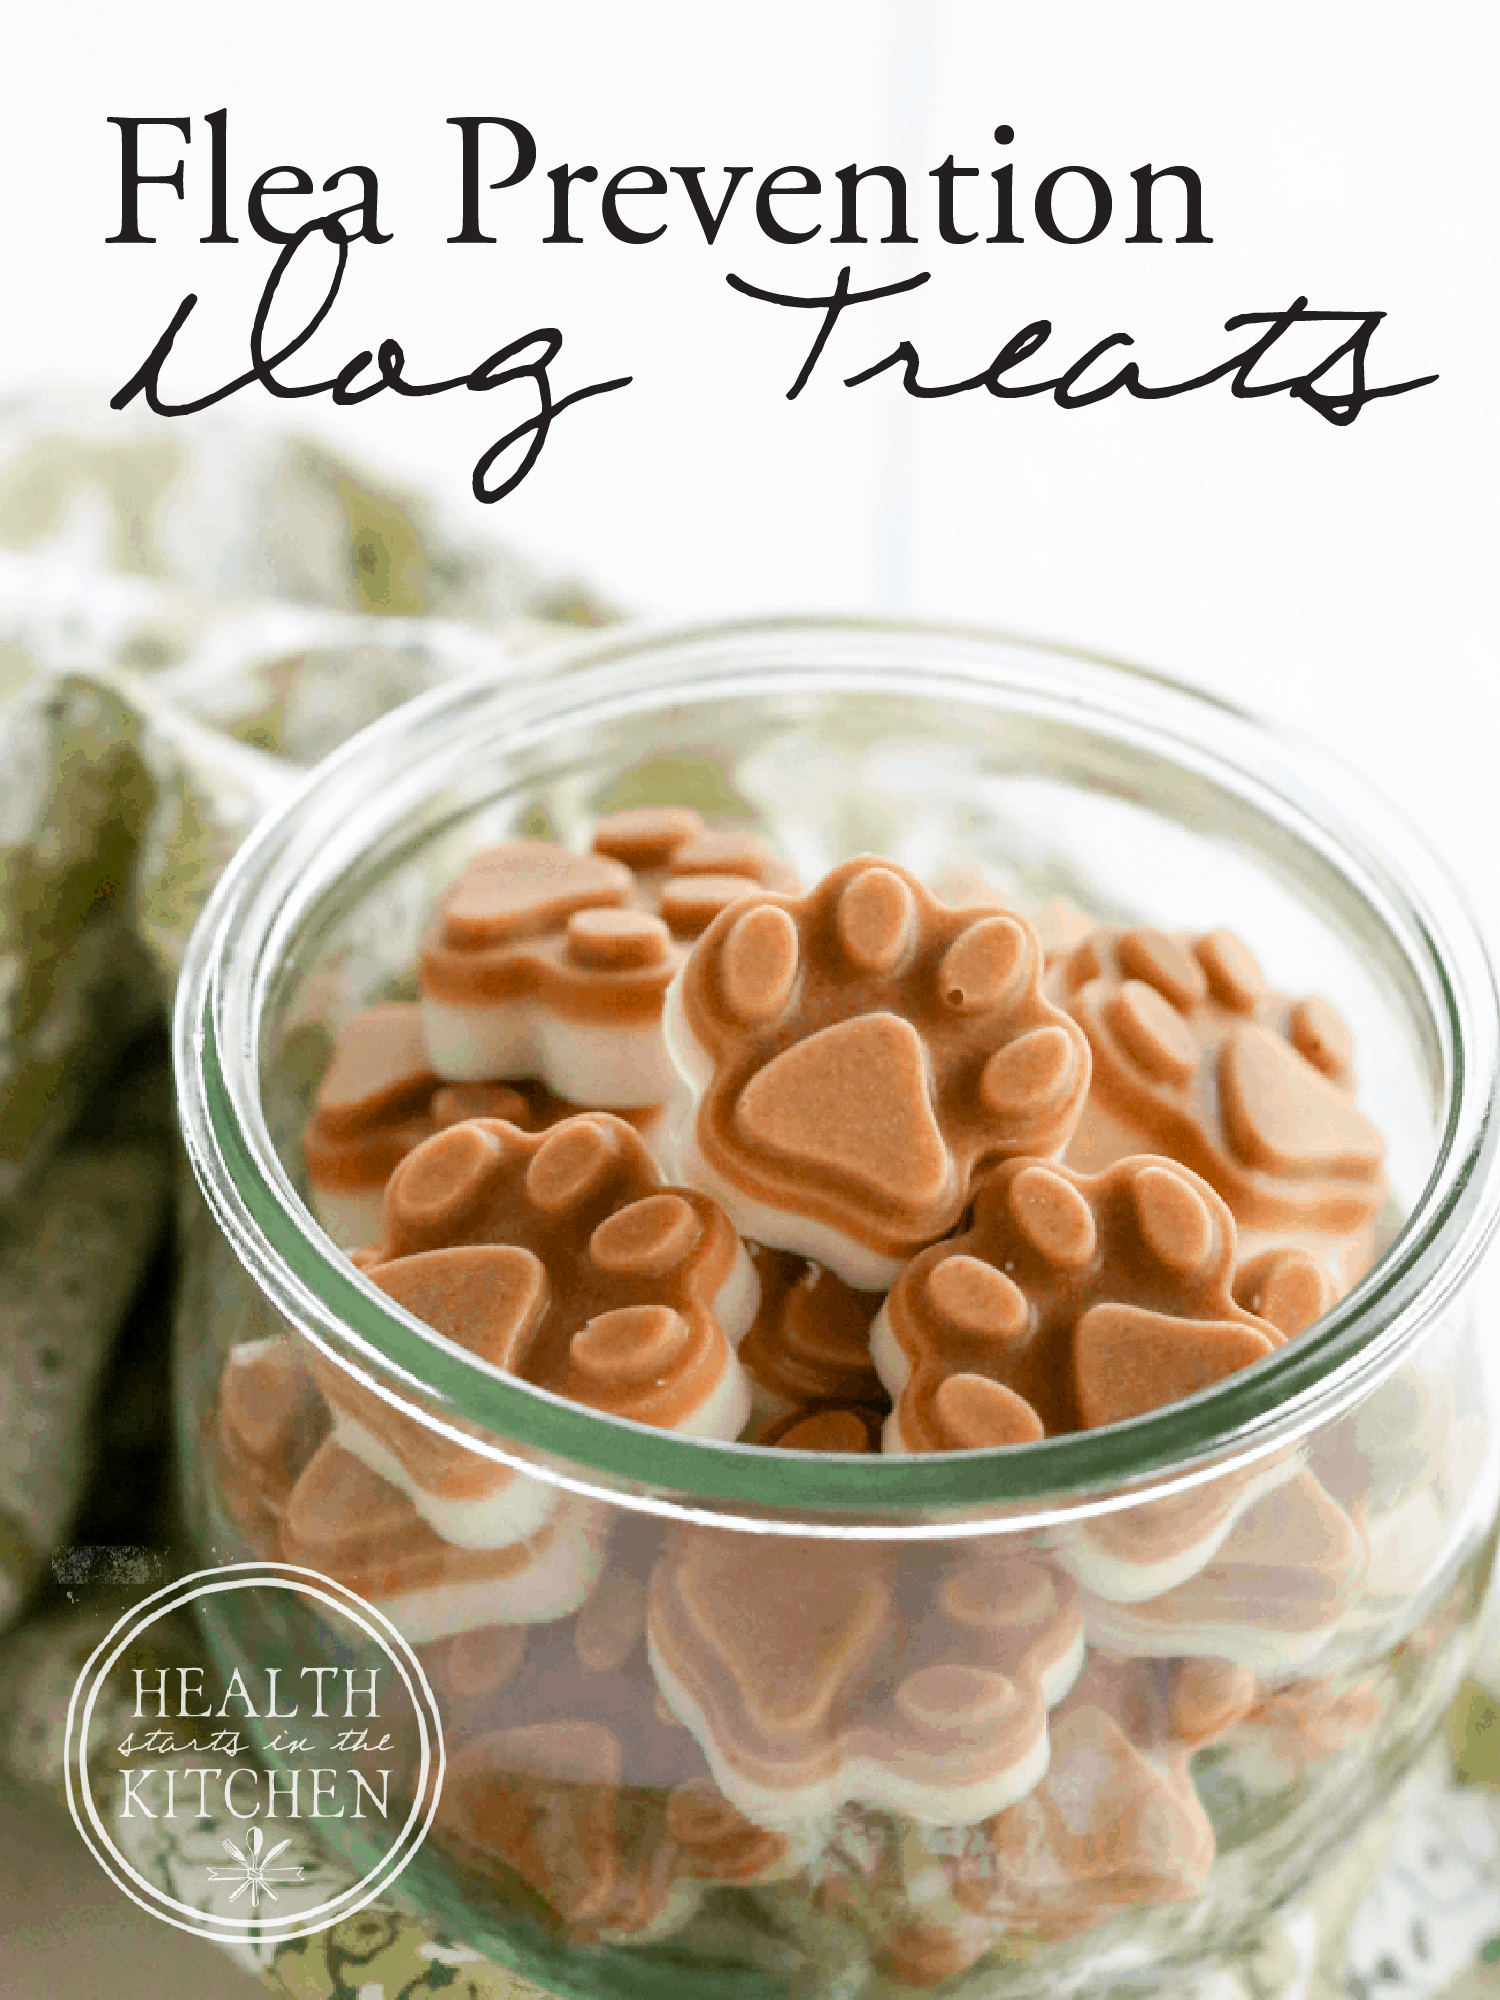 Homemade Flea Prevention Dog Treats